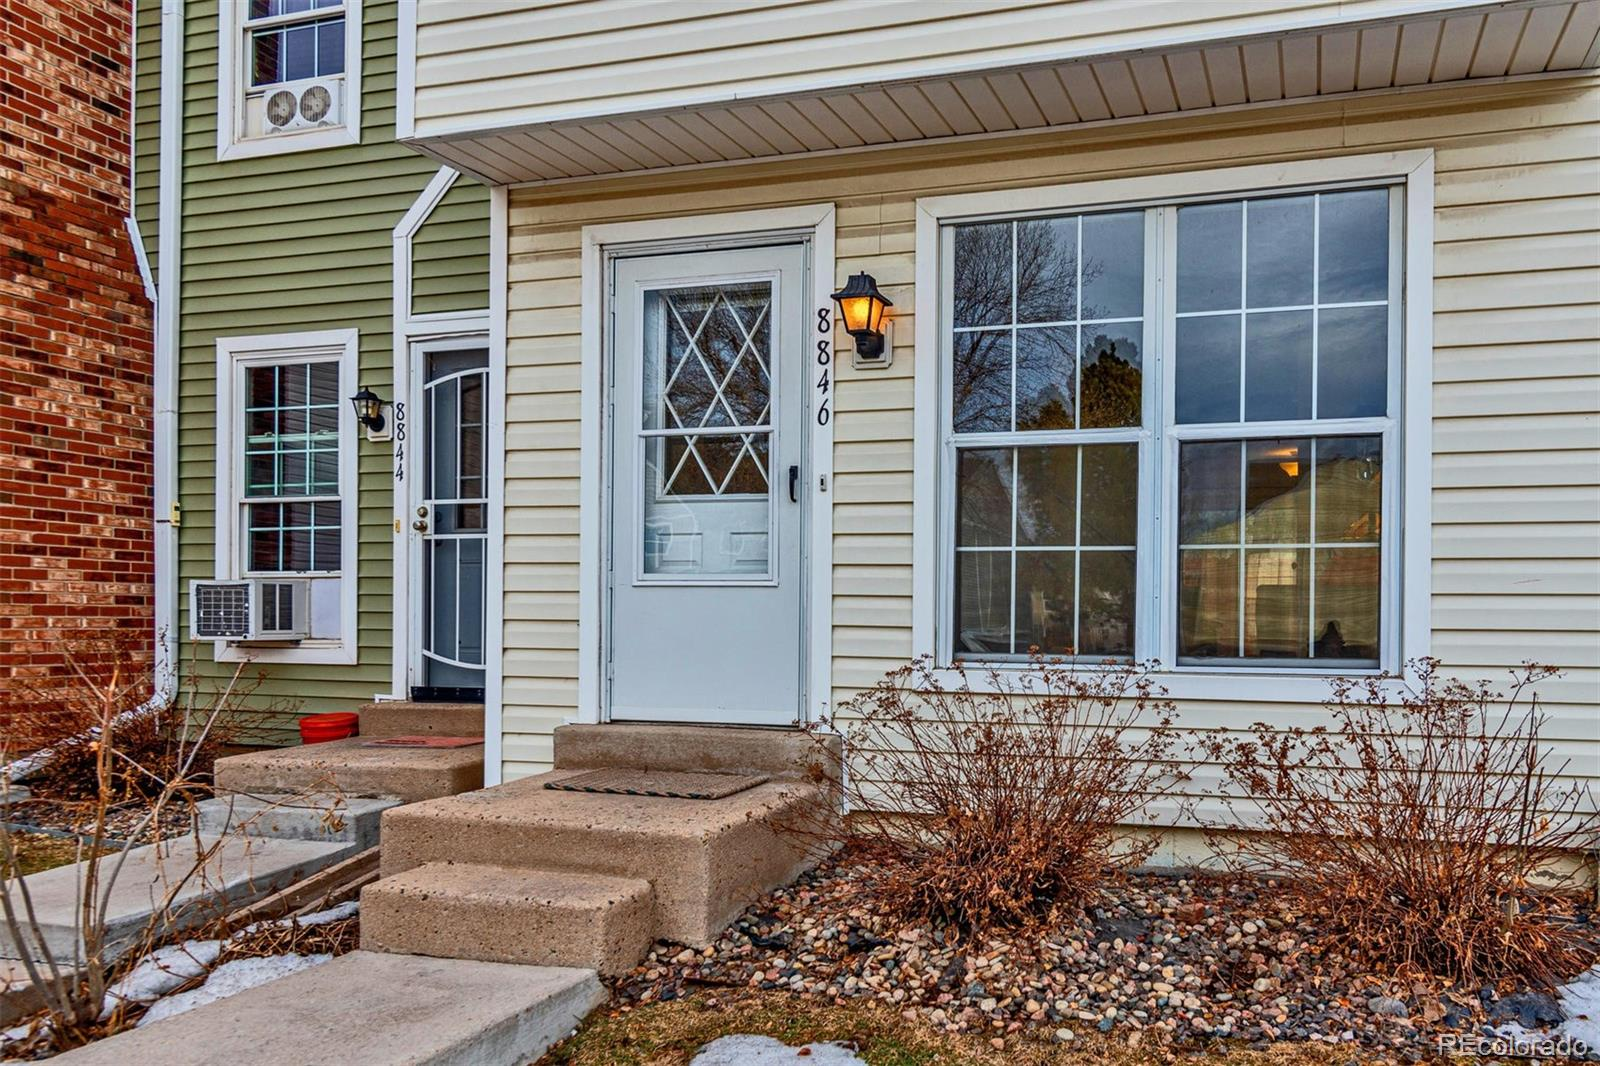 MLS# 6379353 - 2 - 8846 W Dartmouth Place, Lakewood, CO 80227